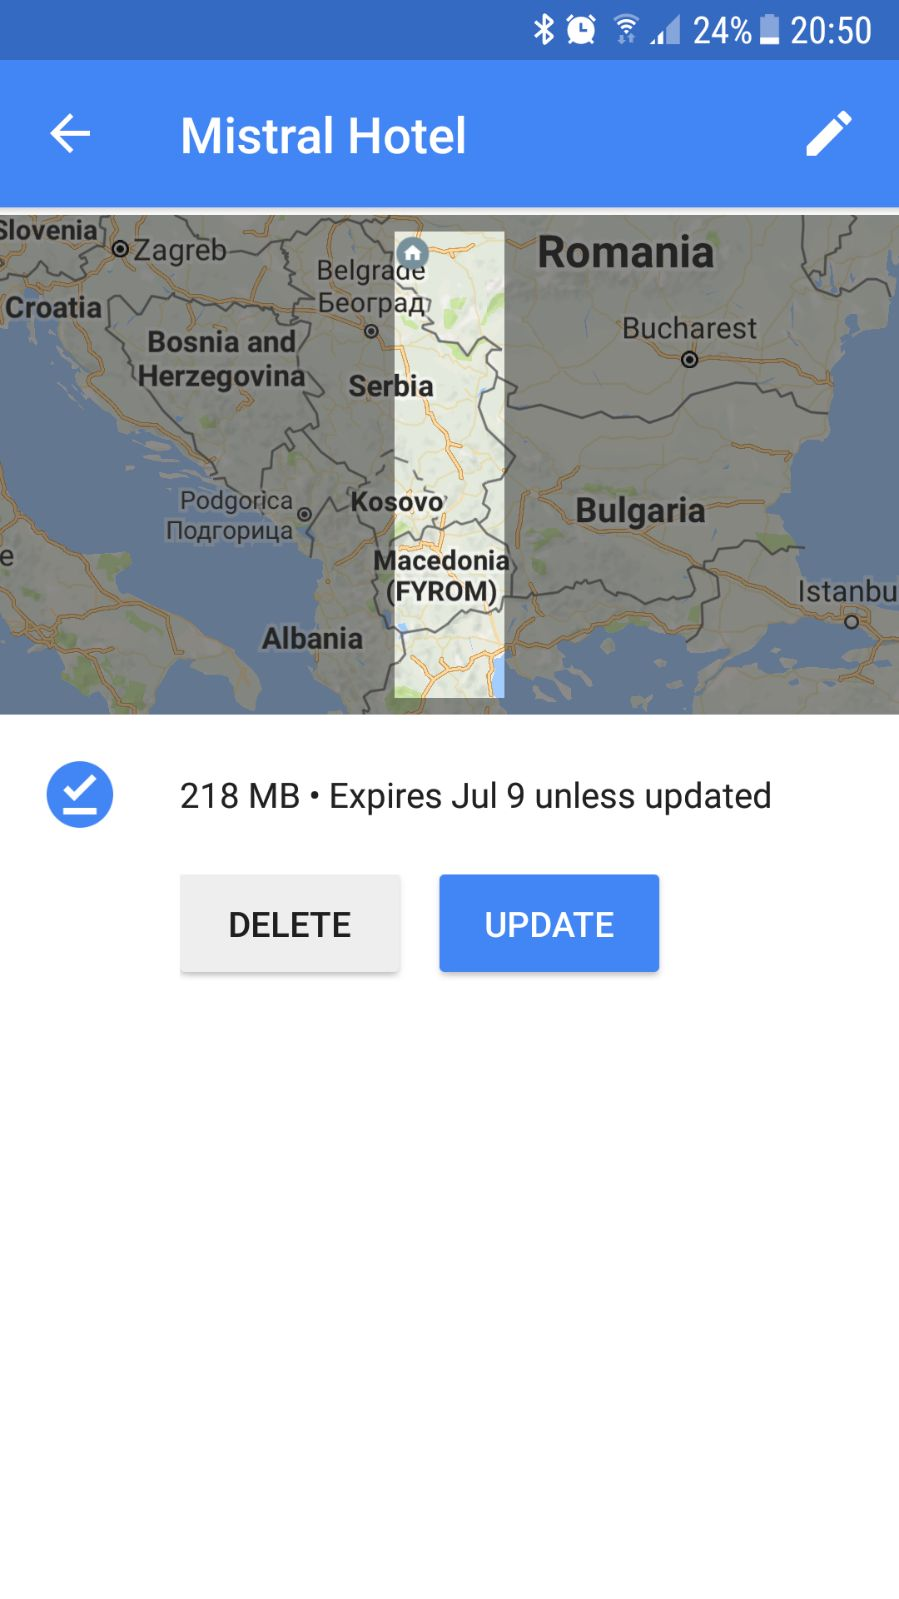 Download routes for offline use - Google Maps Help